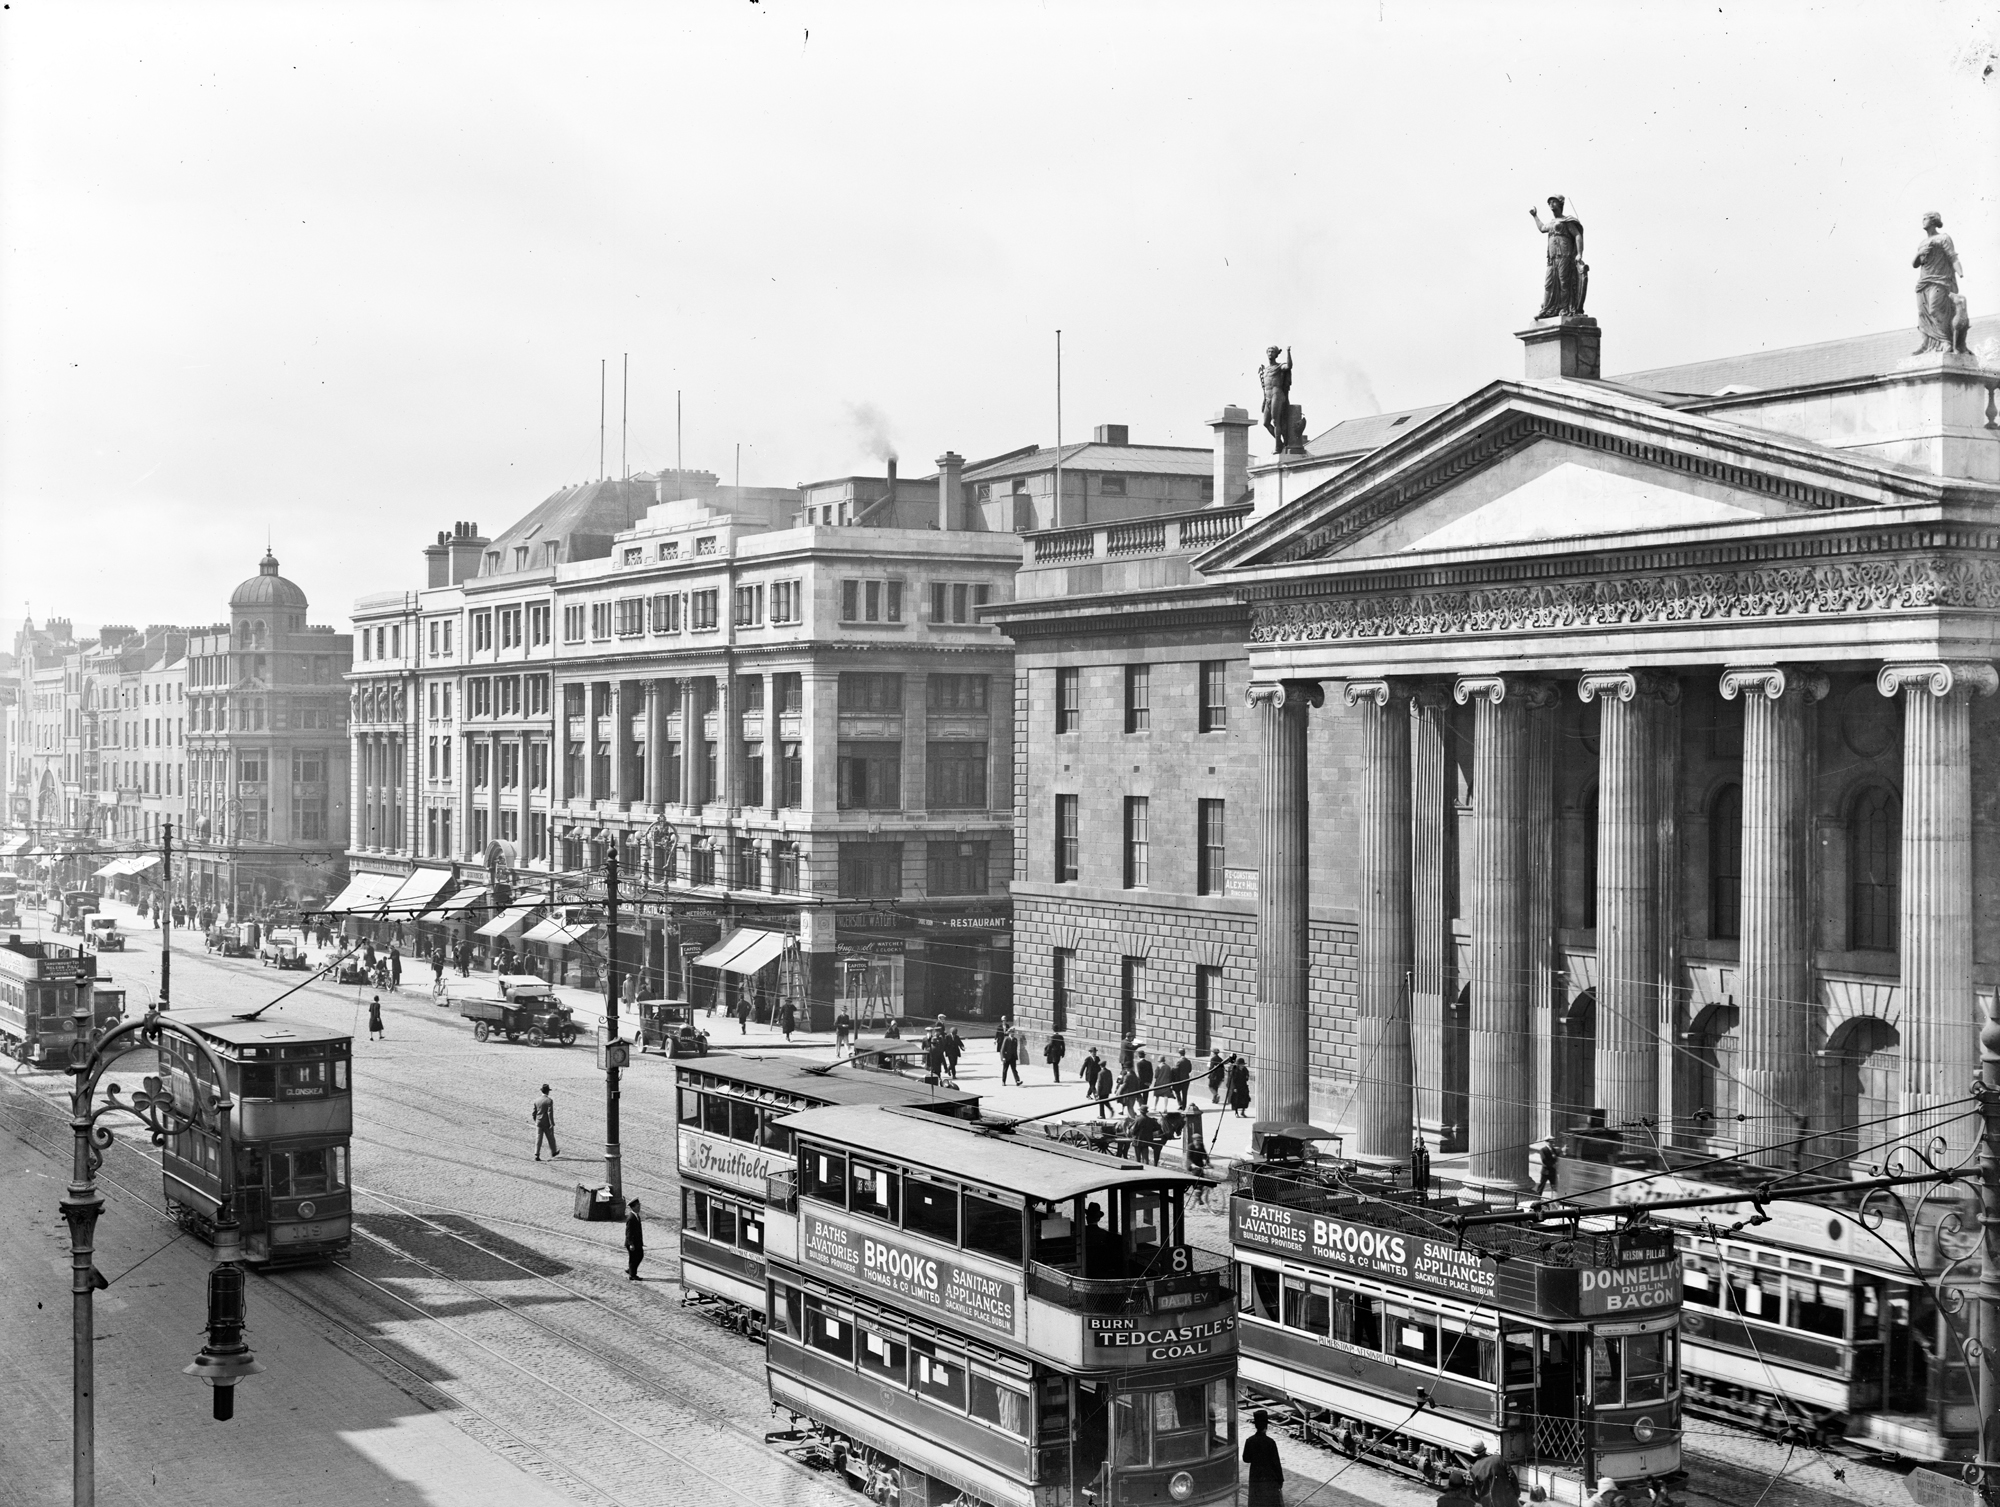 General Post Office, O'Connell Street, Dublin City, Co. Dublin